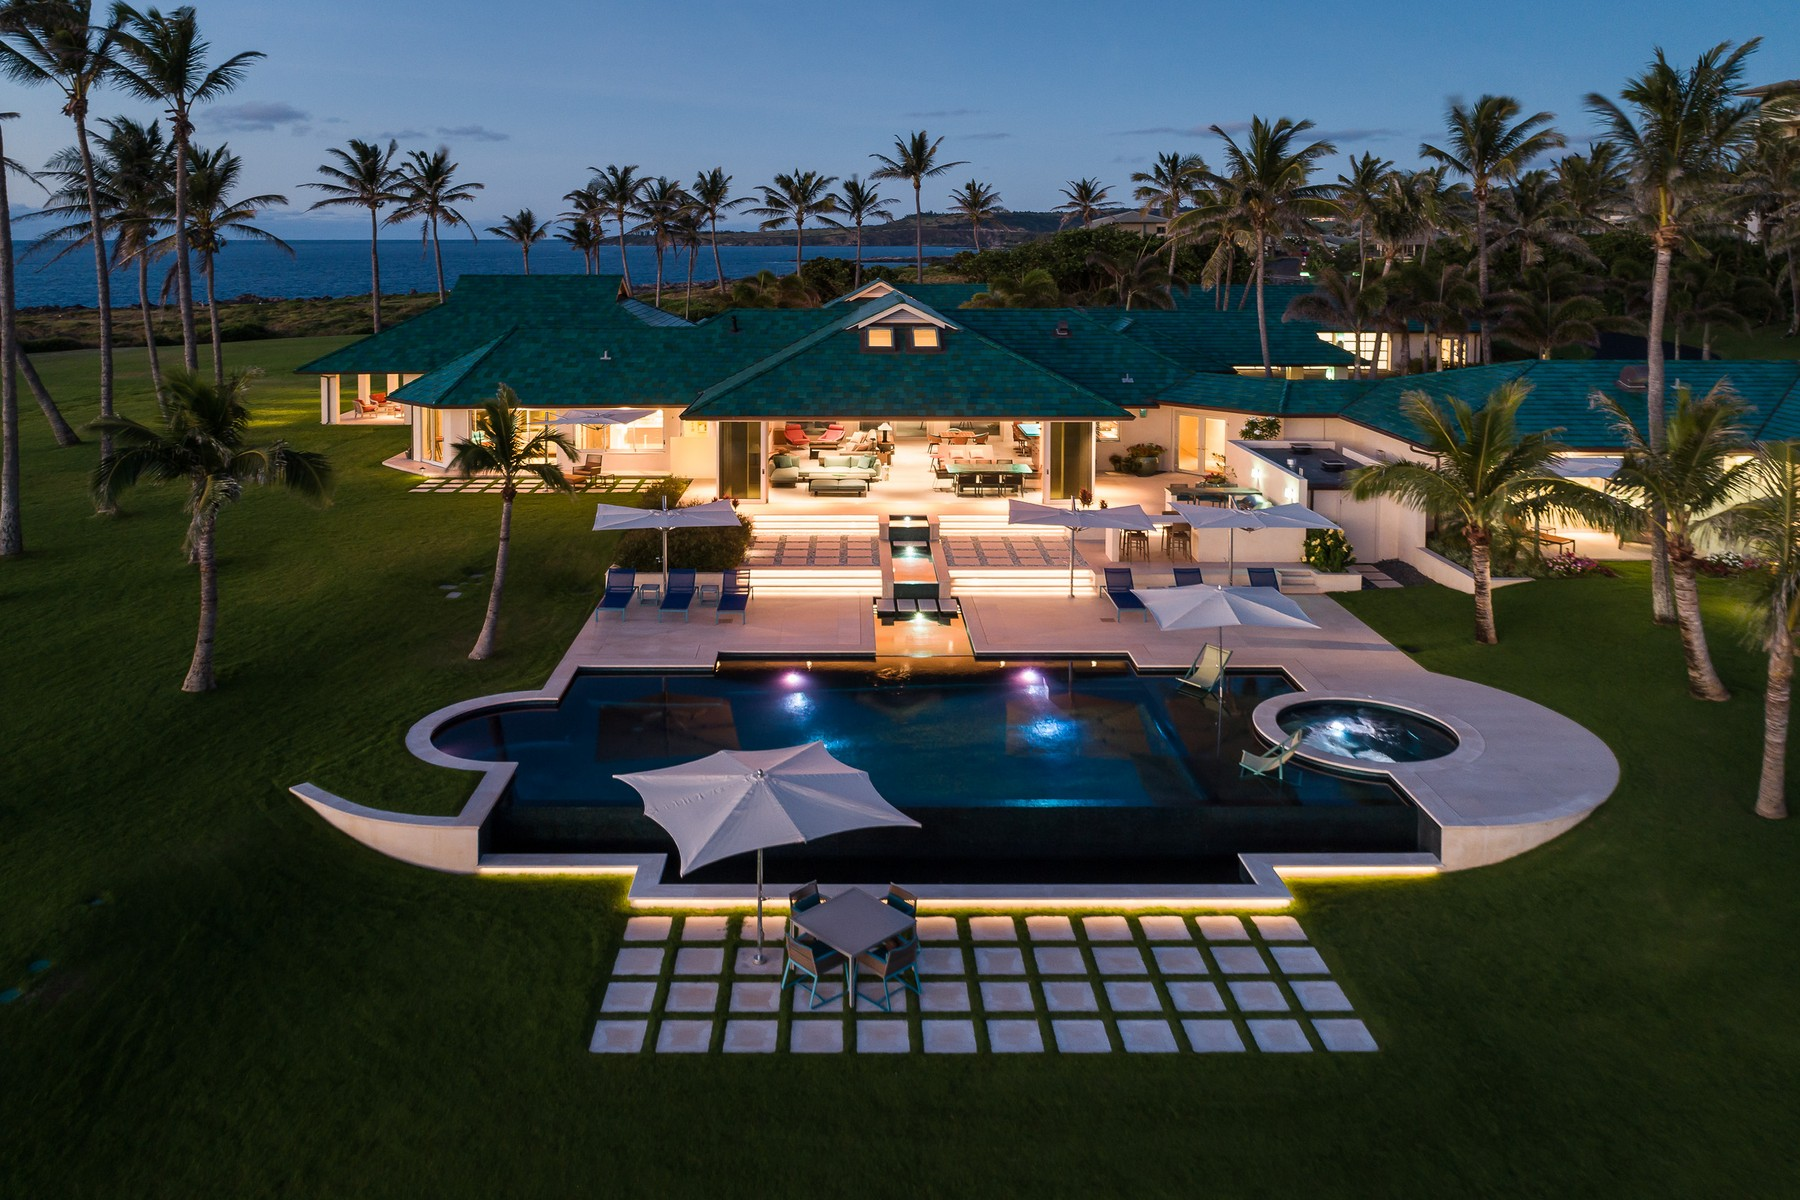 Single Family Home for Sale at Once in a Lifetime: Oceanfront Estate in Kapalua, Maui 9 Bay Drive Kapalua, Hawaii 96761 United States